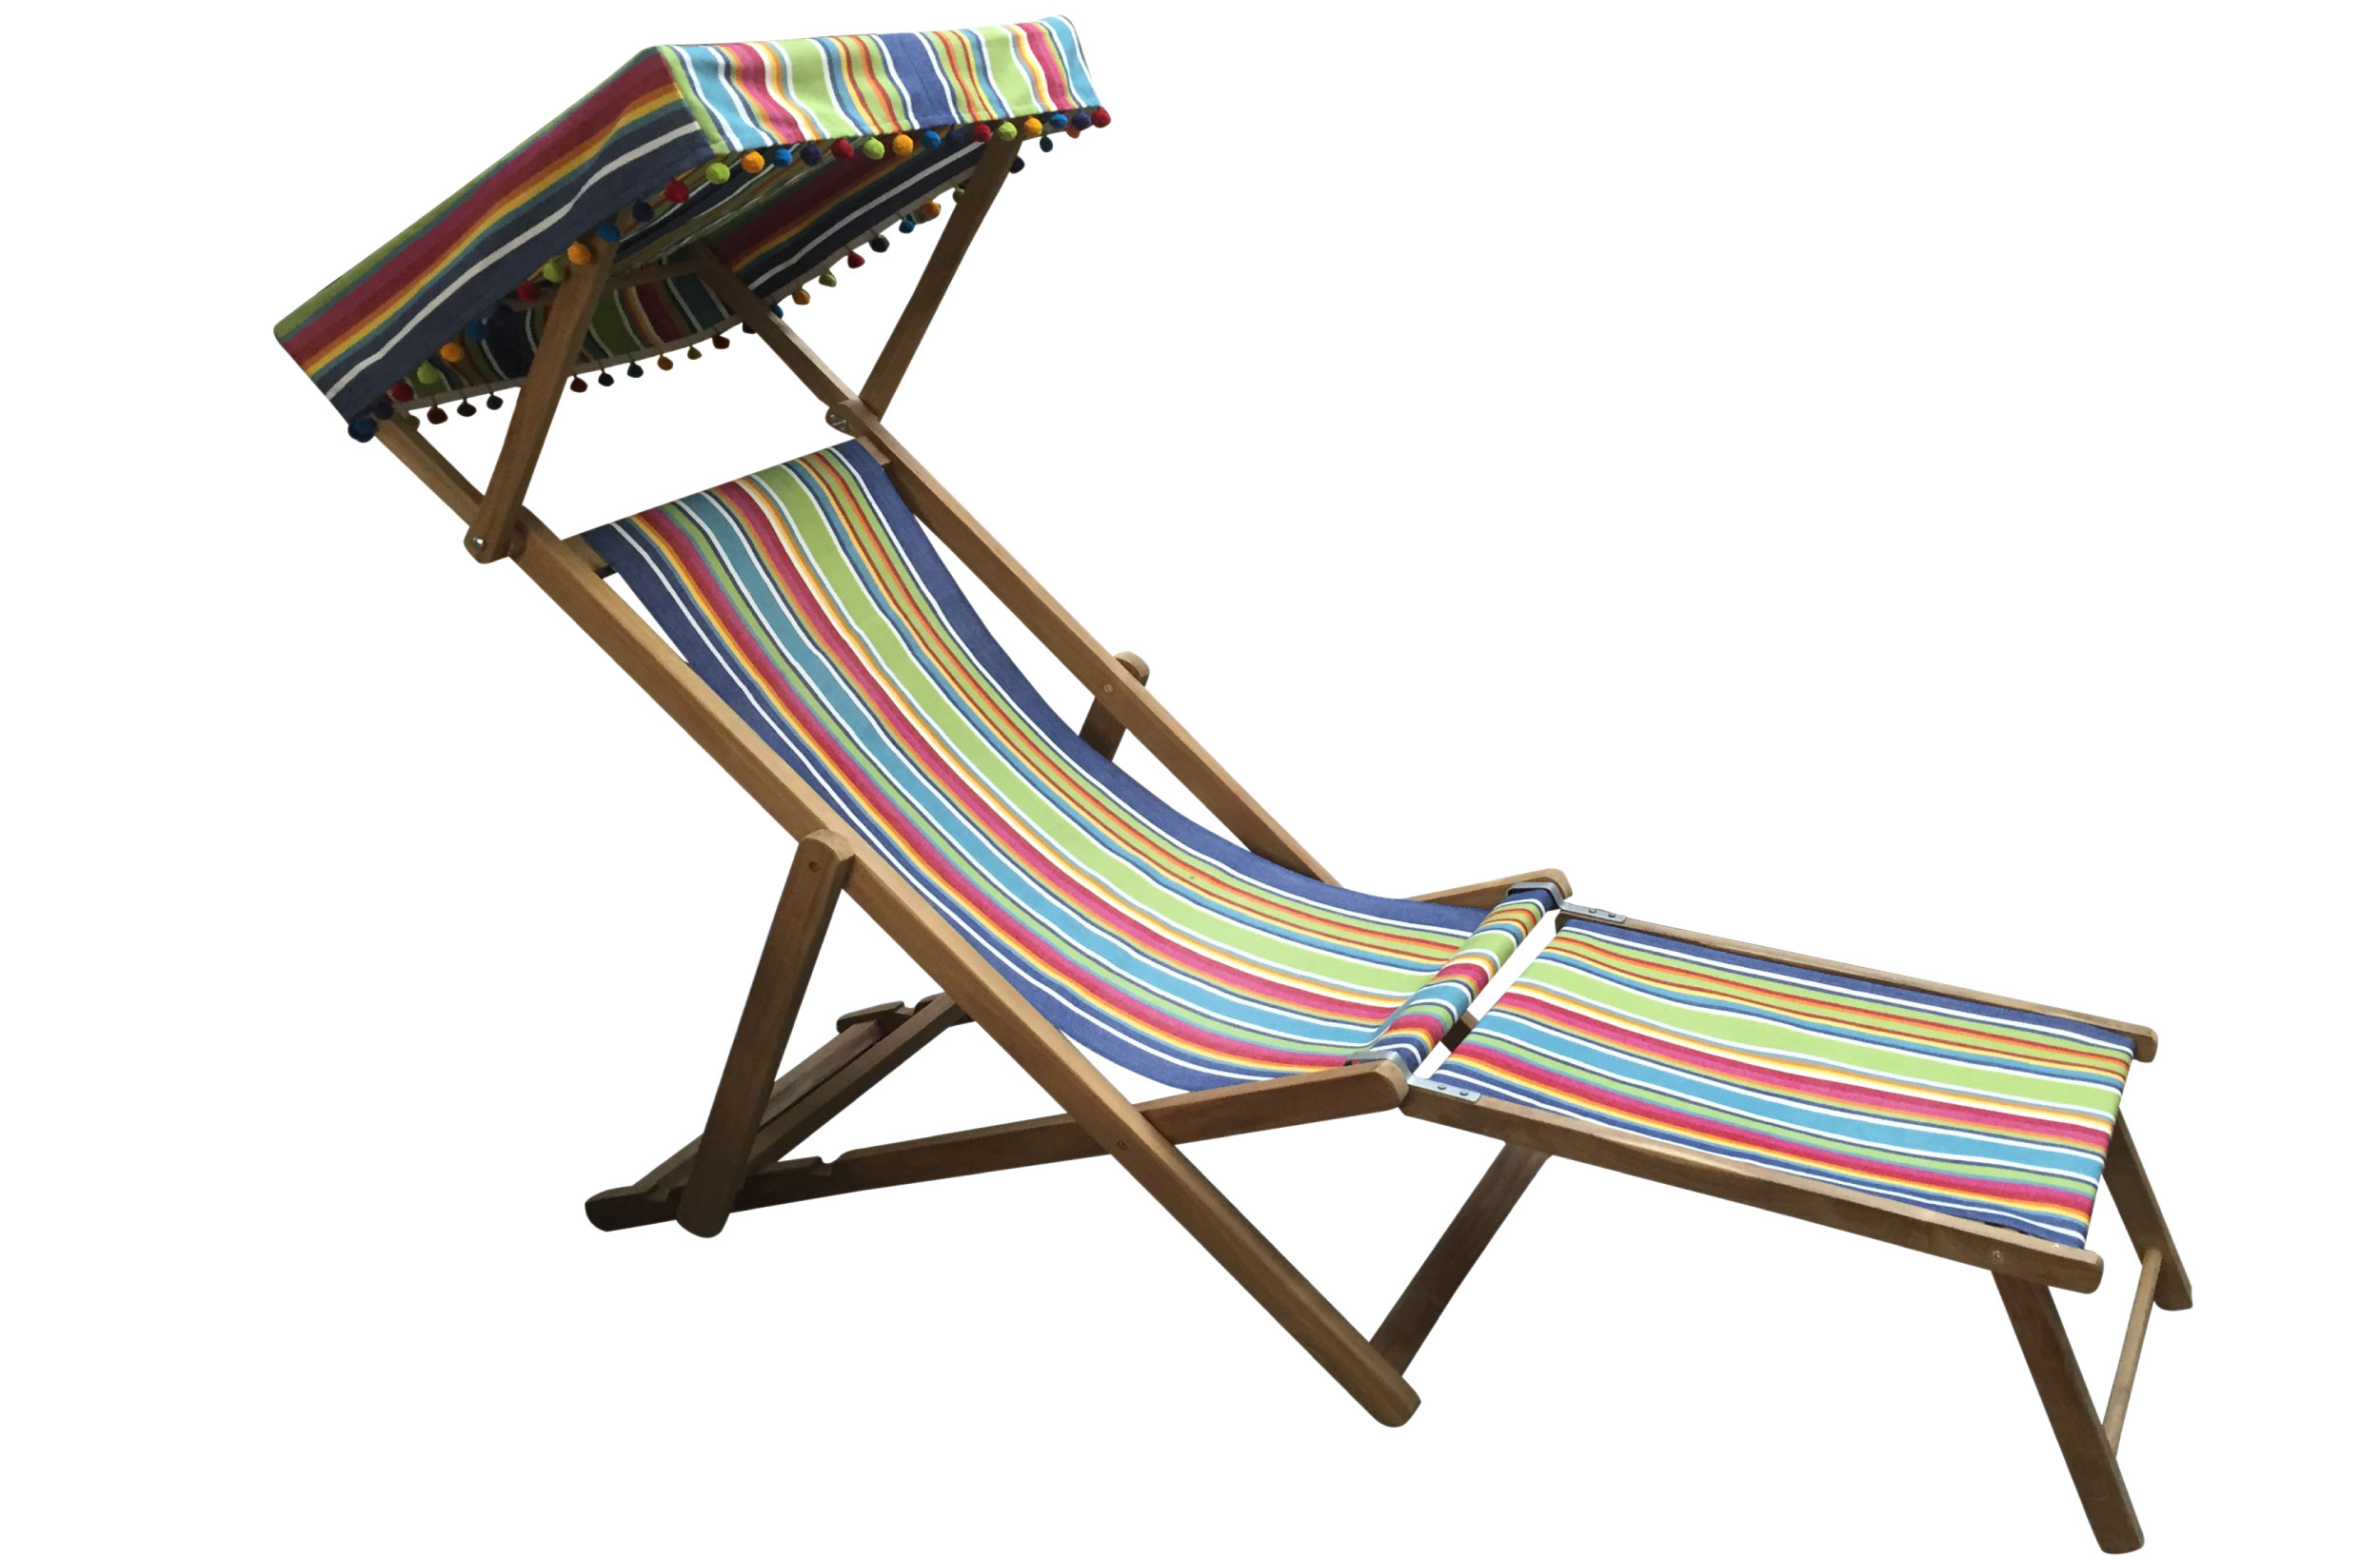 Canopied Deckchair with Footstool blue, green, red stripes